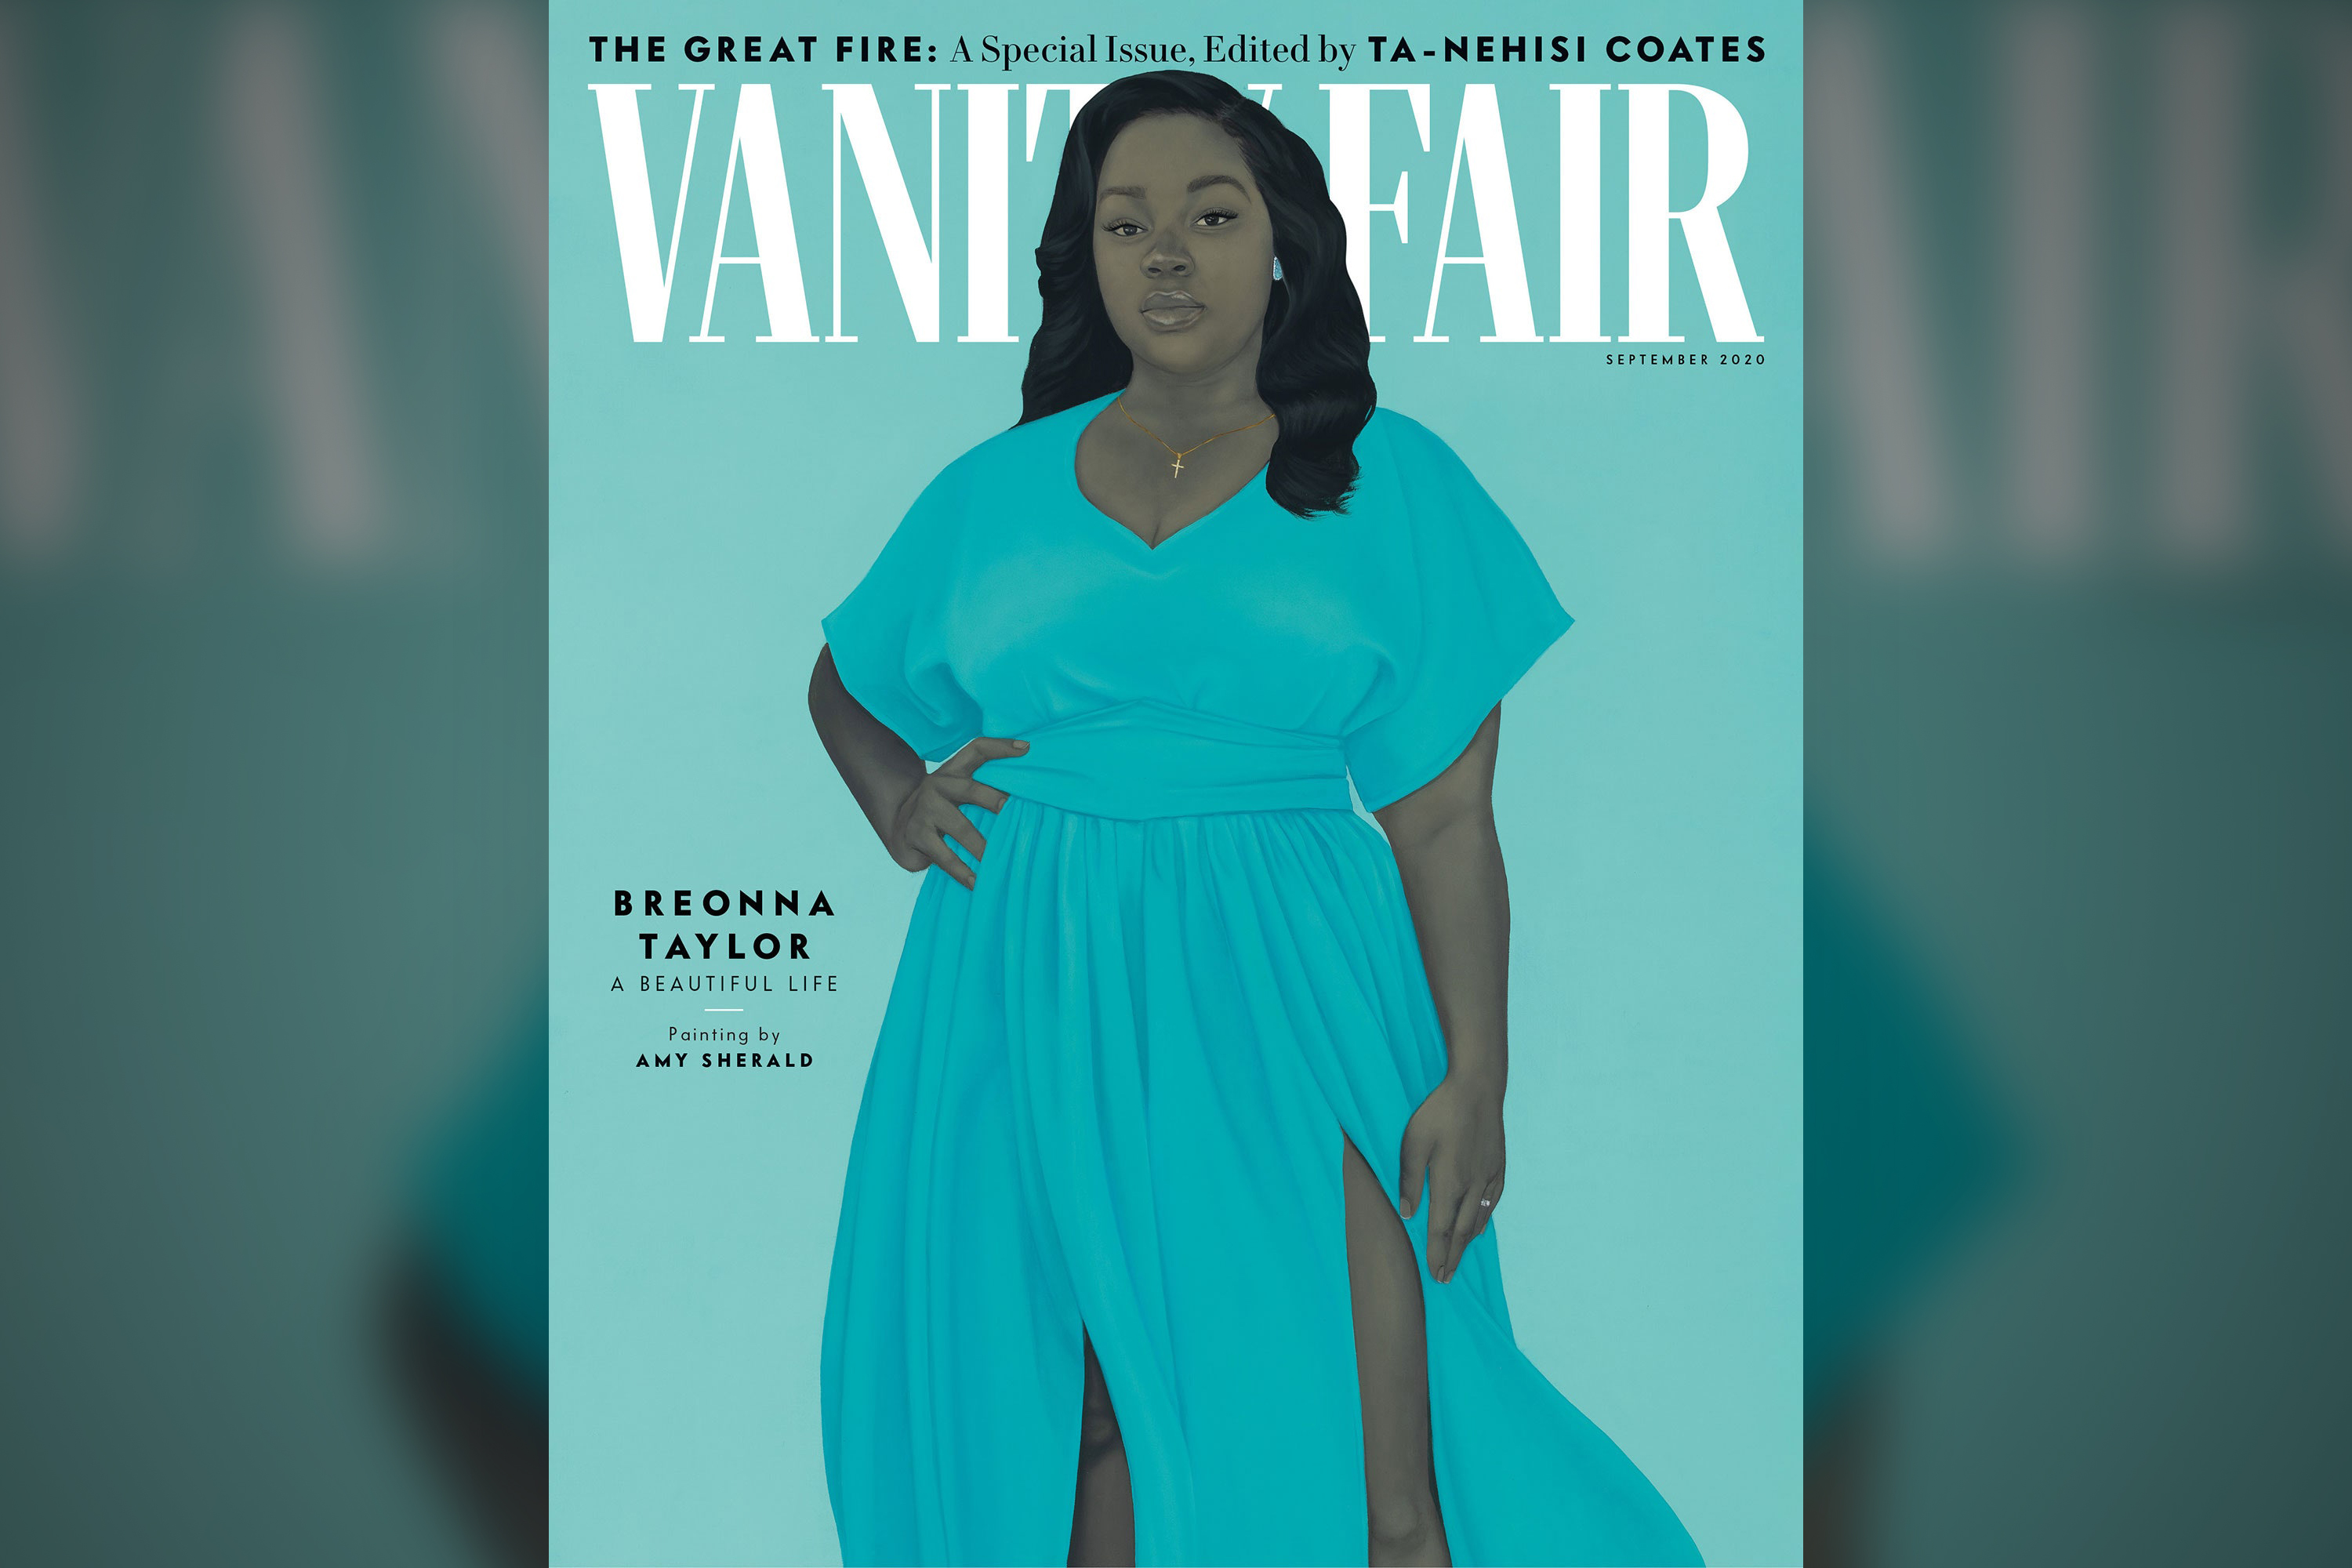 'The Great Fire': A Breonna Taylor portrait cover Vanity Fair's September special issue